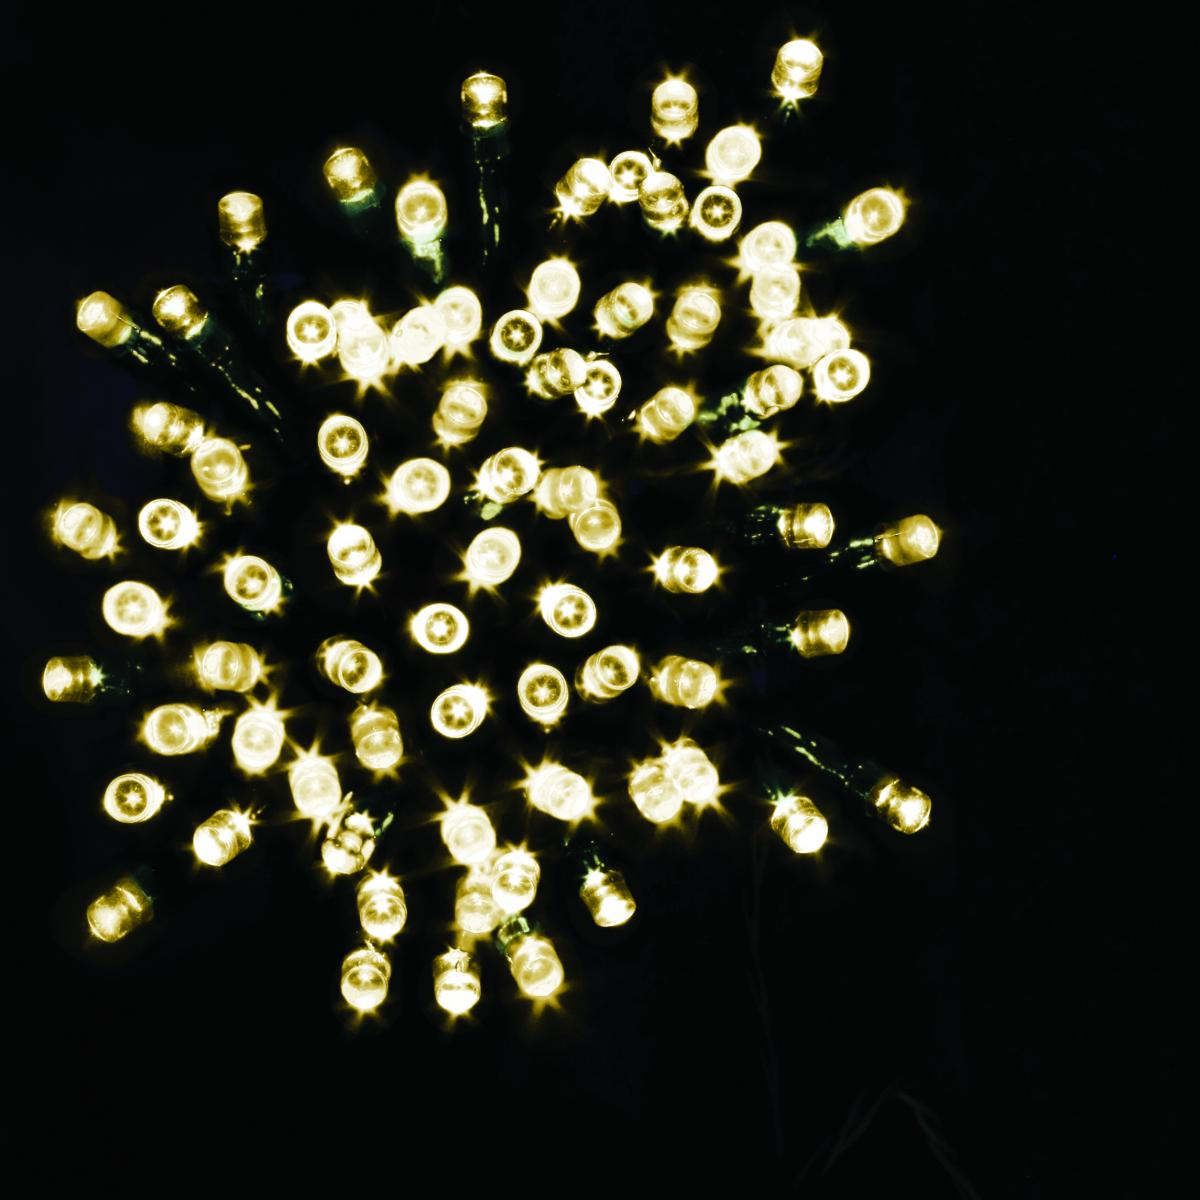 100 LED Battery Operated Timer Lights  - Warm White – Now Only £6.00